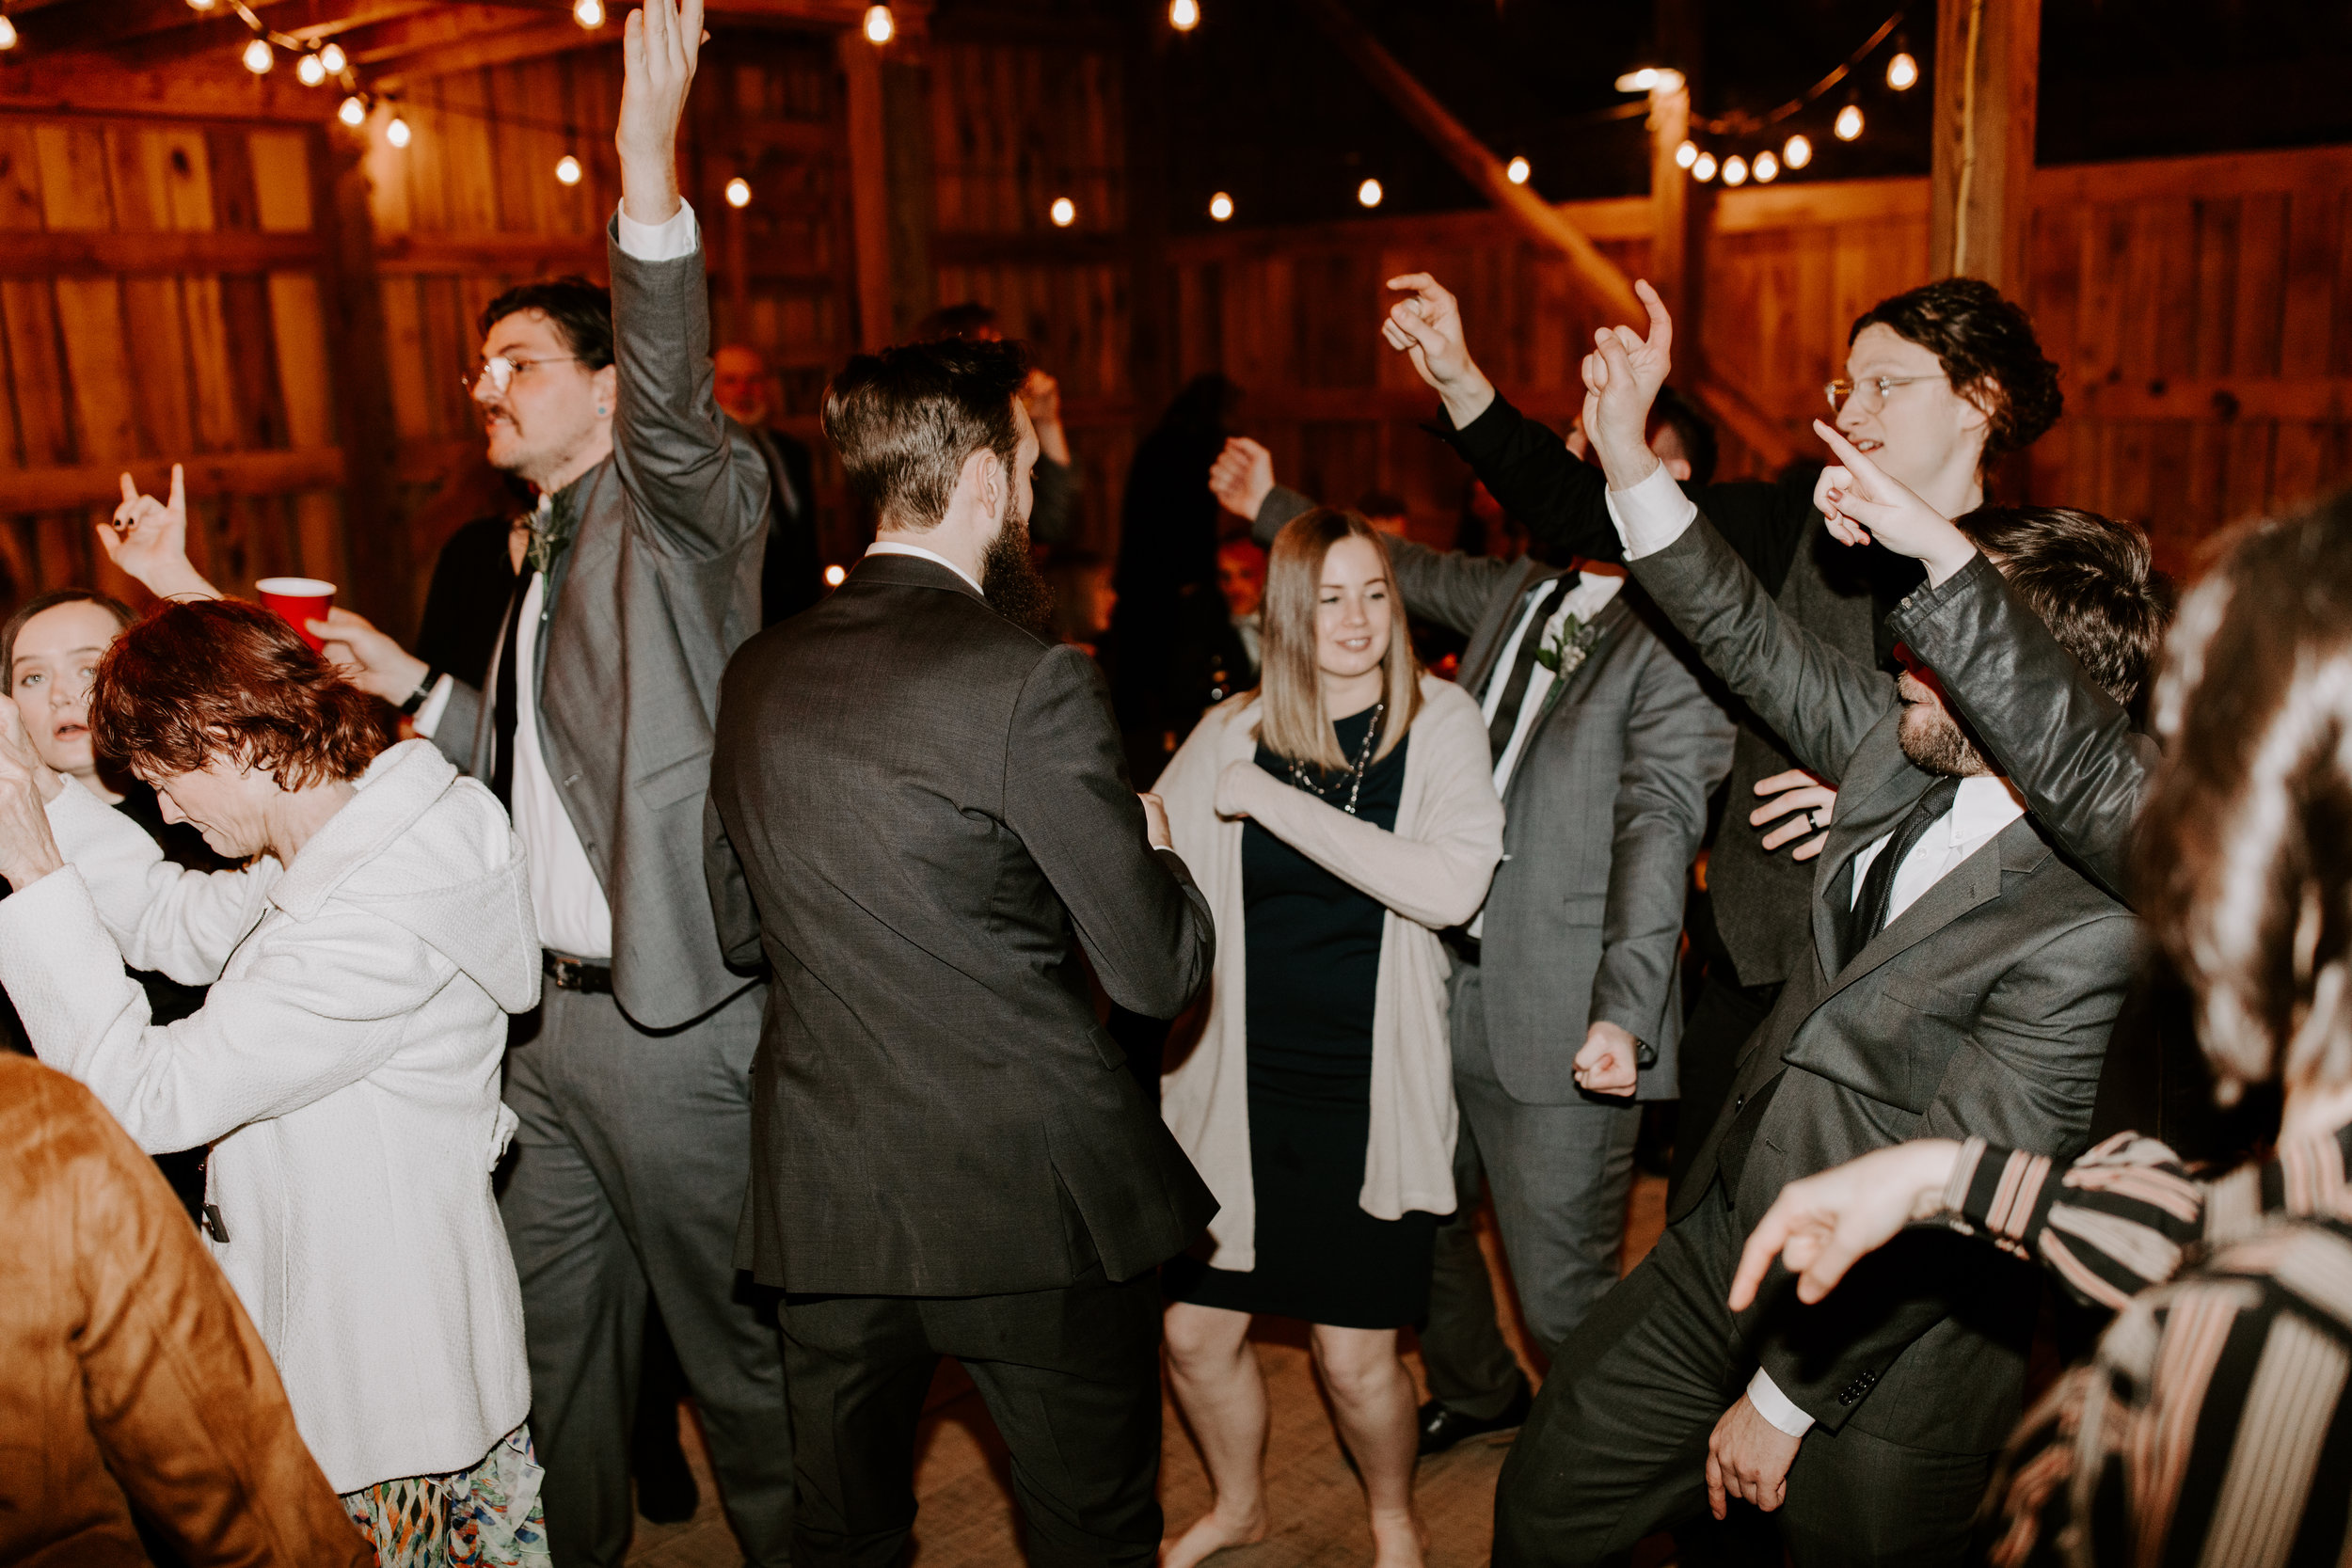 Dancing pictures at wedding in Nashville tn